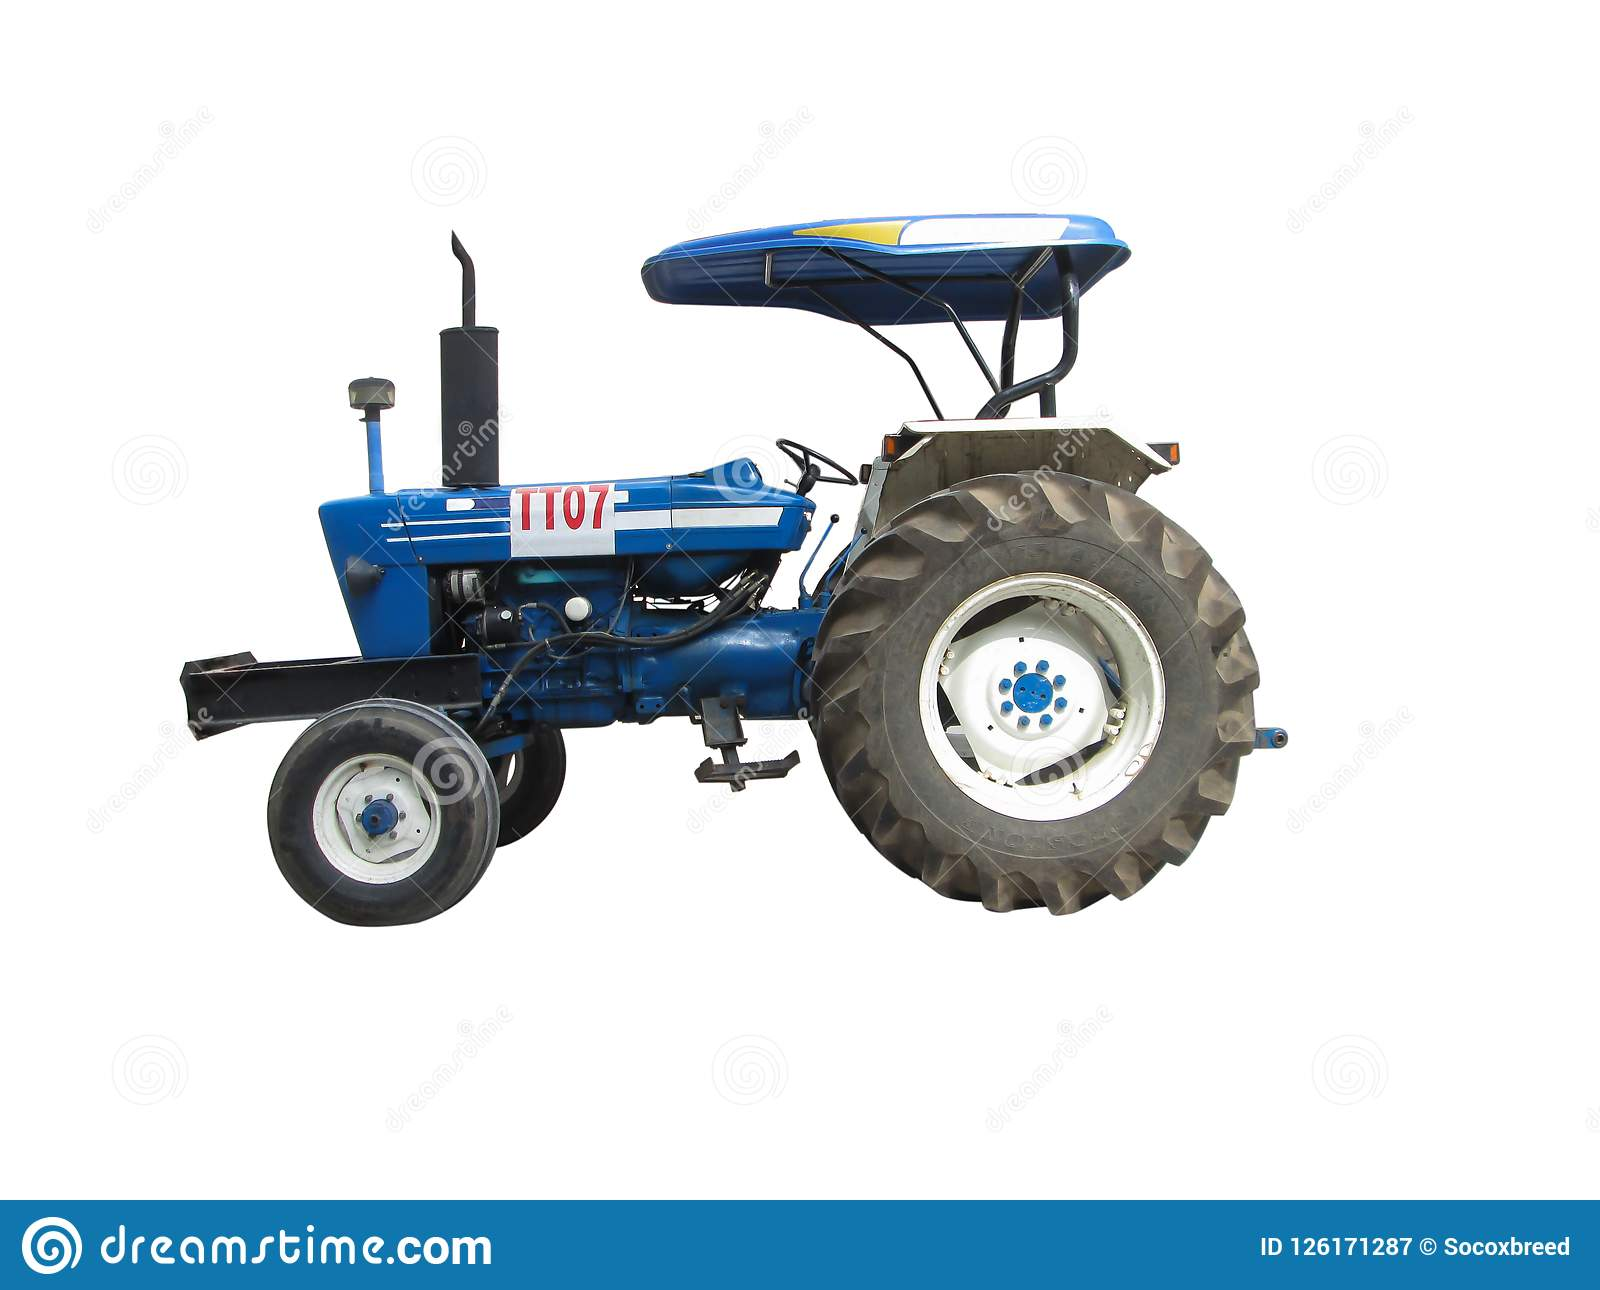 A blue tractor with a sun roof protect,have front wheels, a larger rear wheels on white isolated background